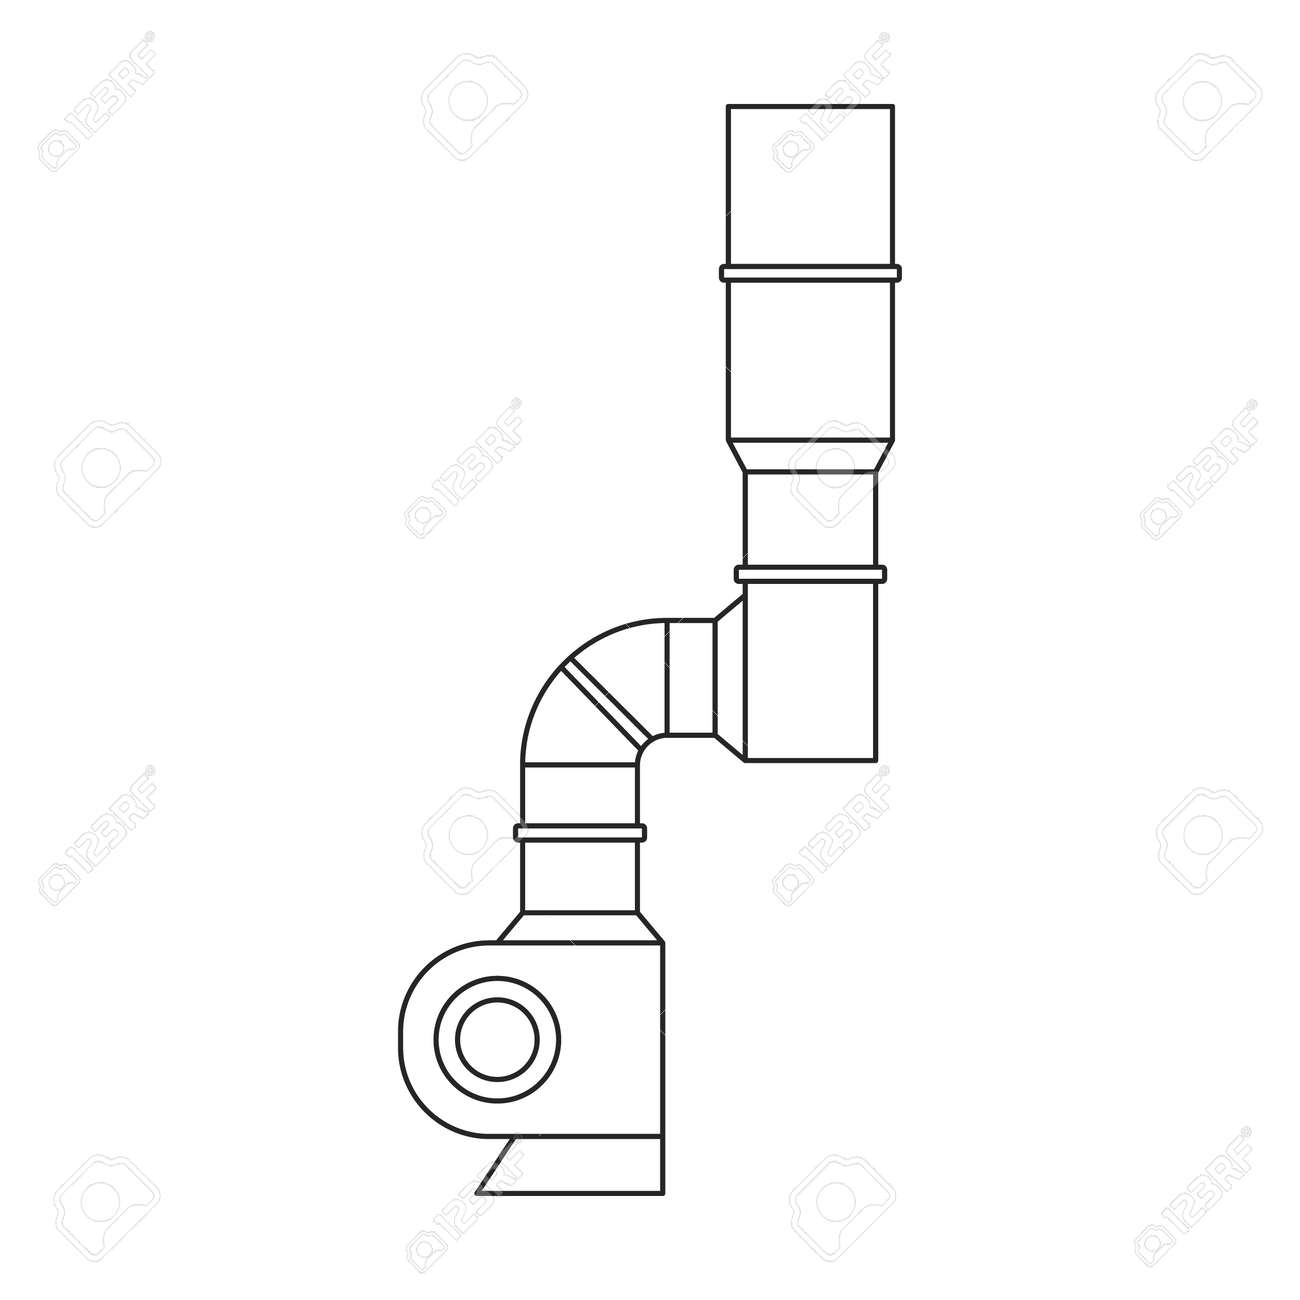 Air system vector outline icon. Vector illustration system ventilation, on white background. Isolated outline illustration icon of air ventilation. - 168840995